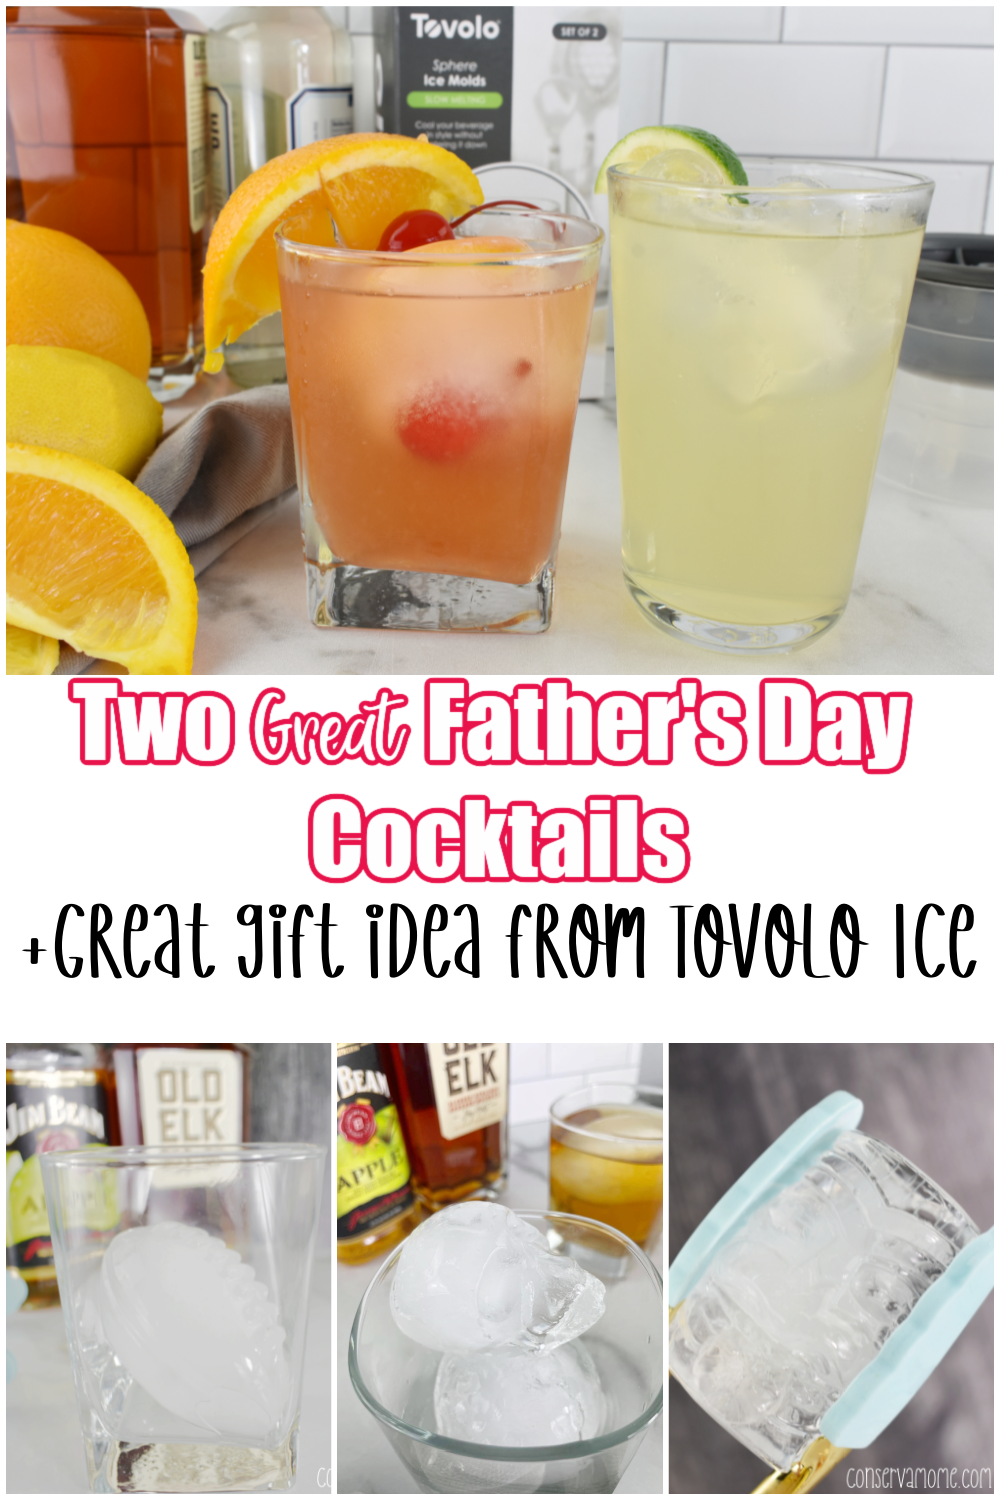 Two Great Father's Day Cocktails